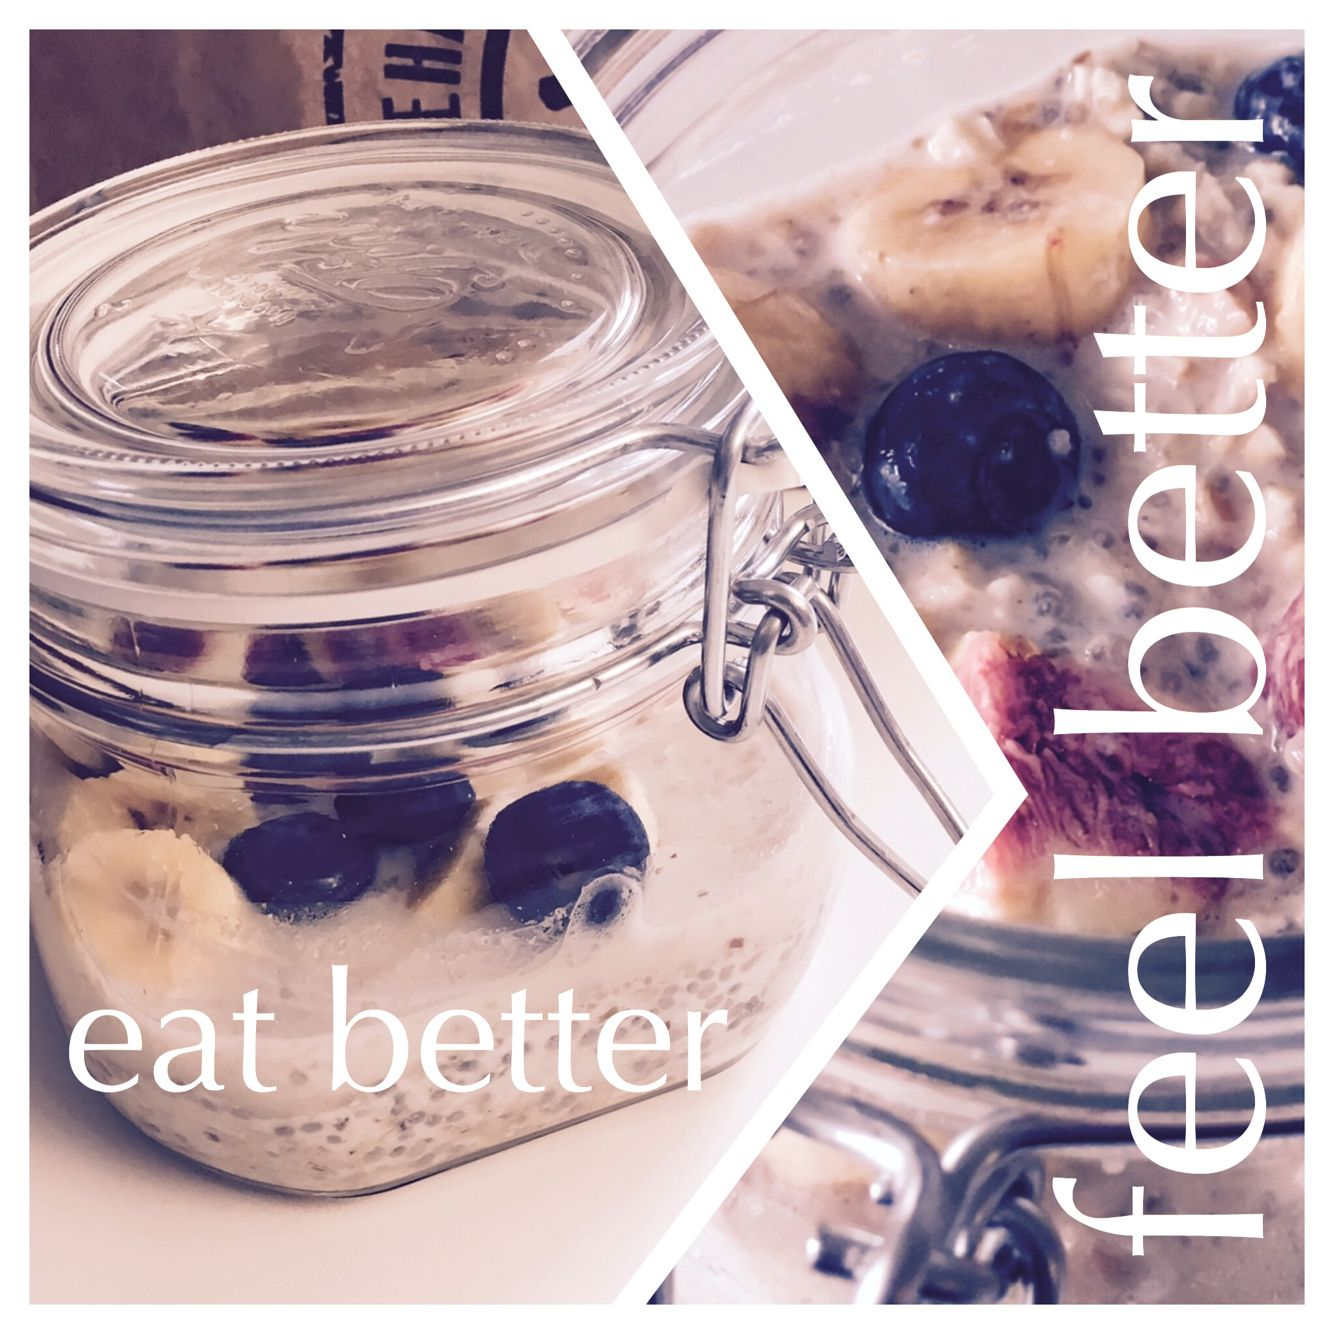 Overnight oats with chia, almond-milk and agave syrup. Topping: fresh banana, figs and blueberry